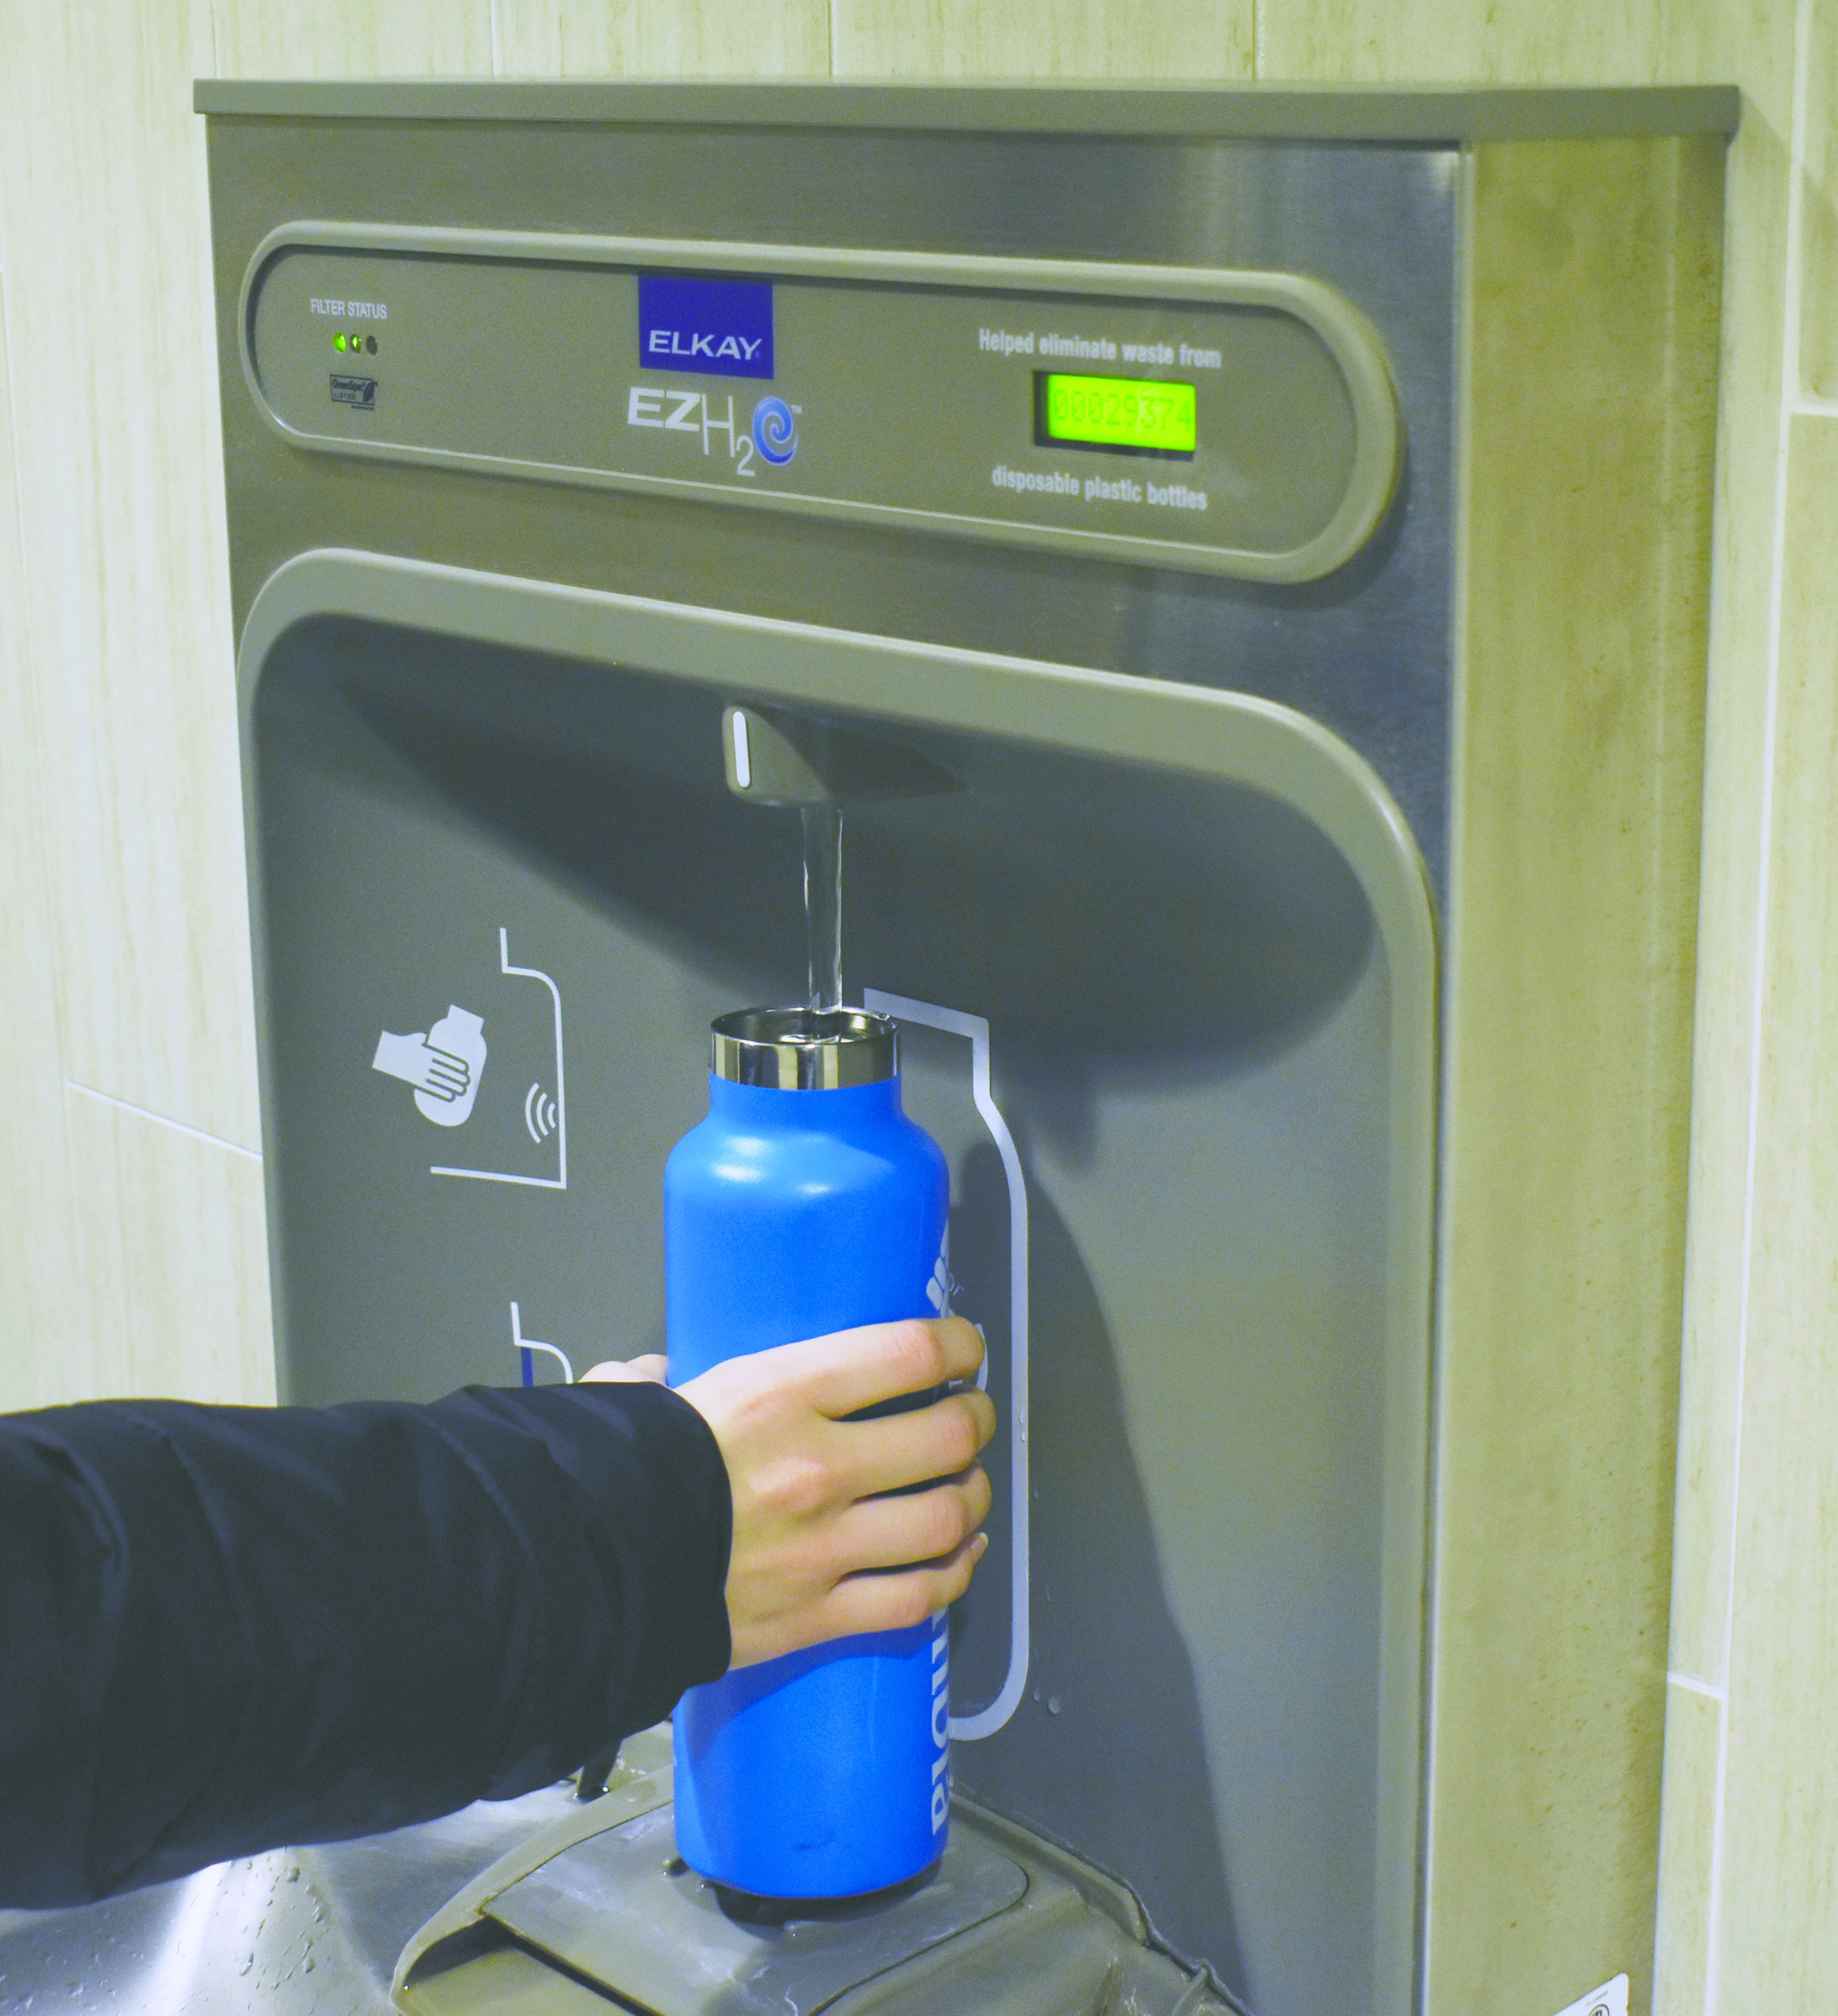 Eliminating water coolers and replacing them with water refilling stations will reduce environmental impacts on campus, according to a new university guideline.  Photo by Brandon Barzola, Staff Photographer/The University of Connecticut